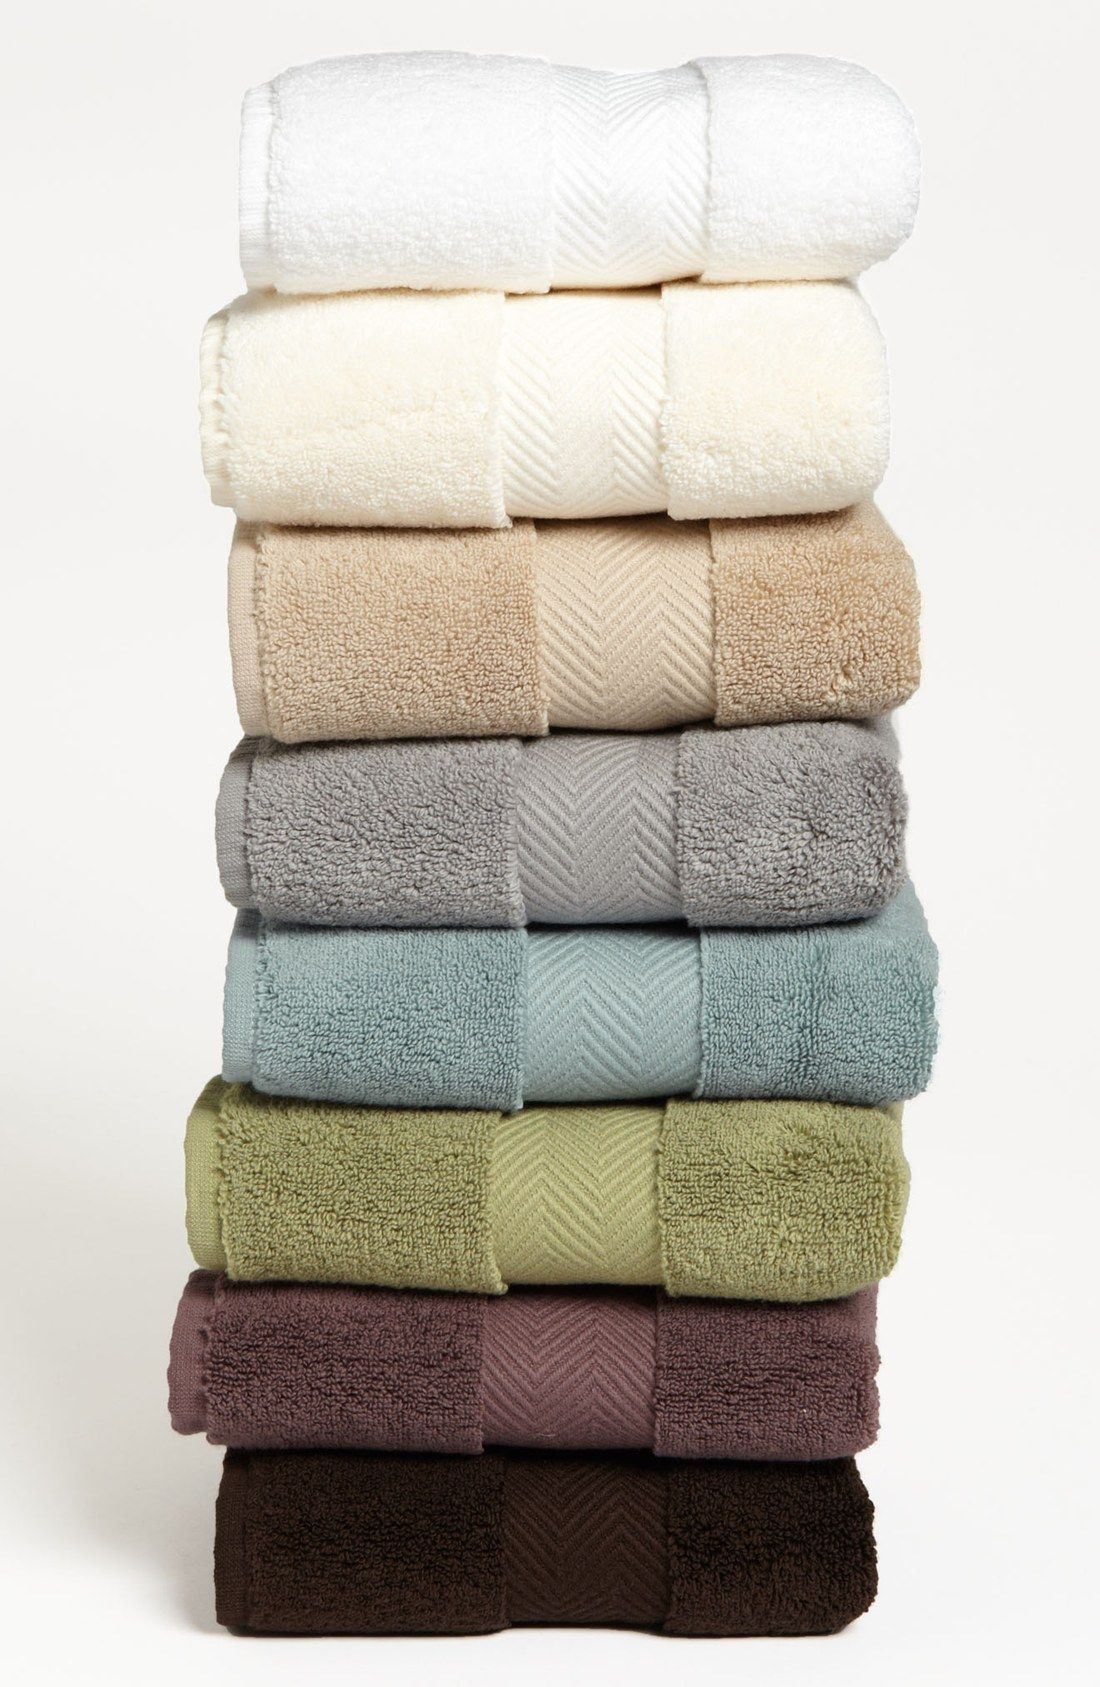 Hydrocotton Bath Towels Extraordinary Now This Looks Comfy  Hydrocotton Ultra Soft Hand Towel Inspiration Design